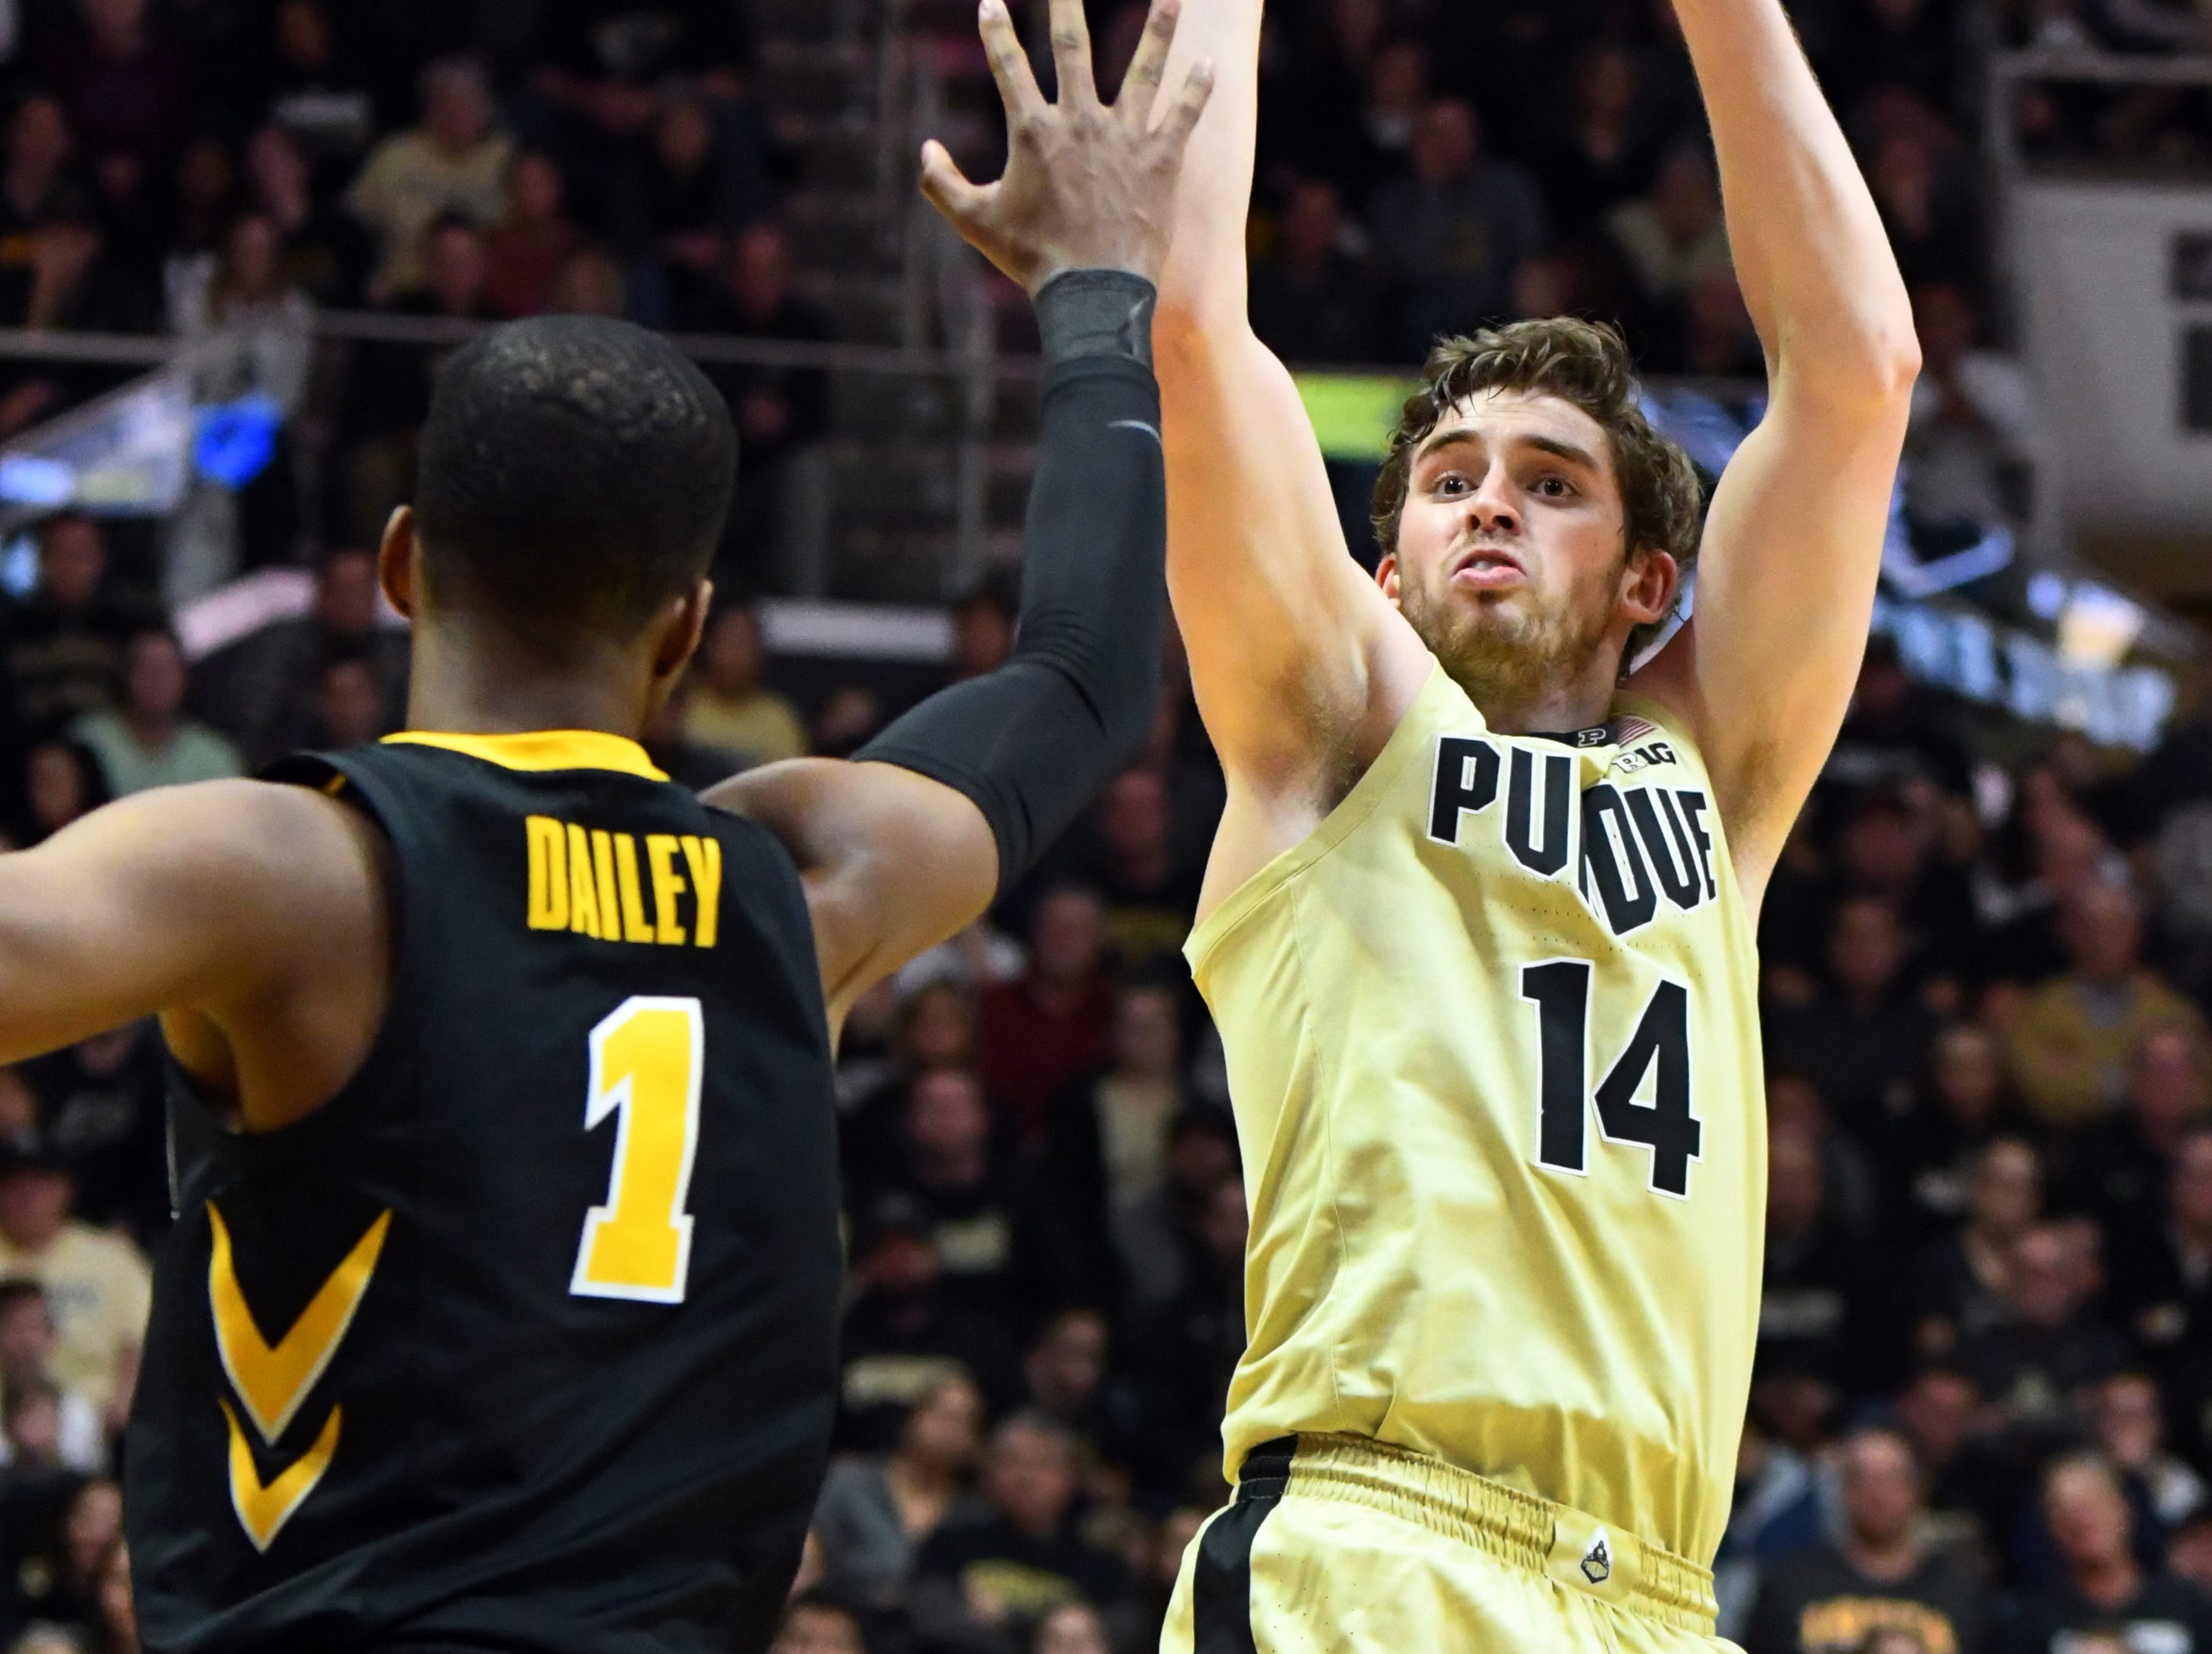 Action from Purdue's win against Iowa in West Lafayette on Thursday January 3, 2019. Purdue defeated the Hawkeyes 86-70. Ryan Cline